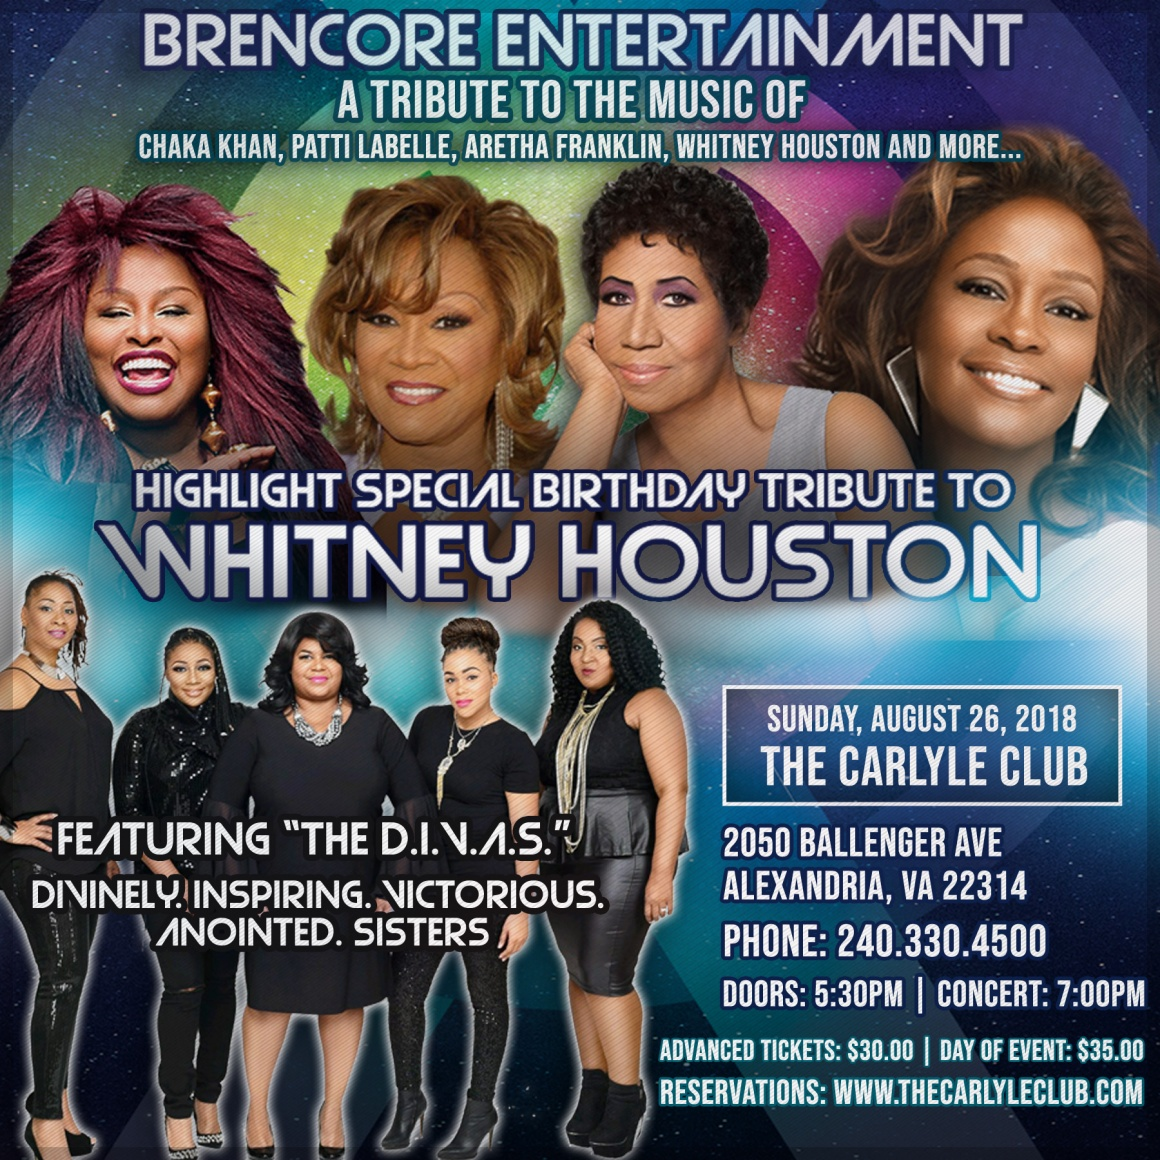 A Tribute to the Music of Chaka Khan, Patti LaBelle, Aretha Franklin